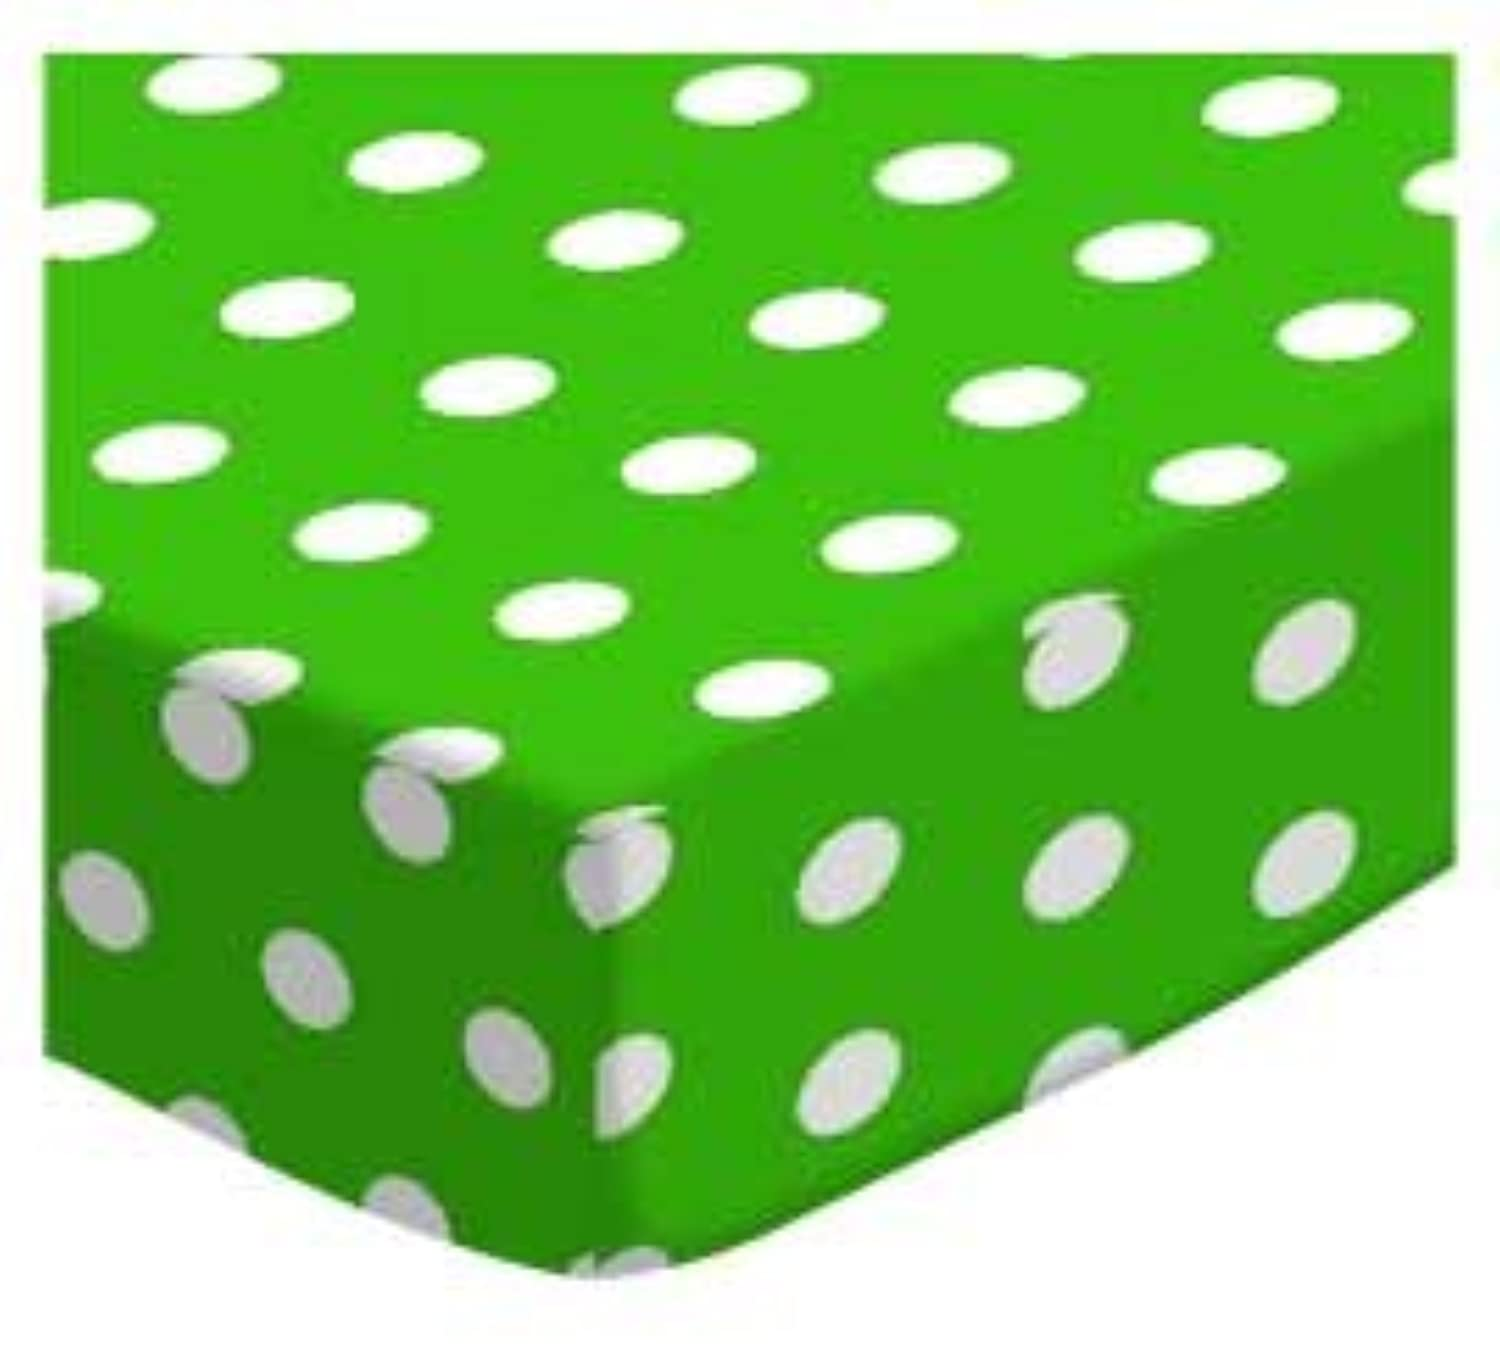 SheetWorld Fitted Cradle Sheet - Polka Dots Green - Made In USA by sheetworld